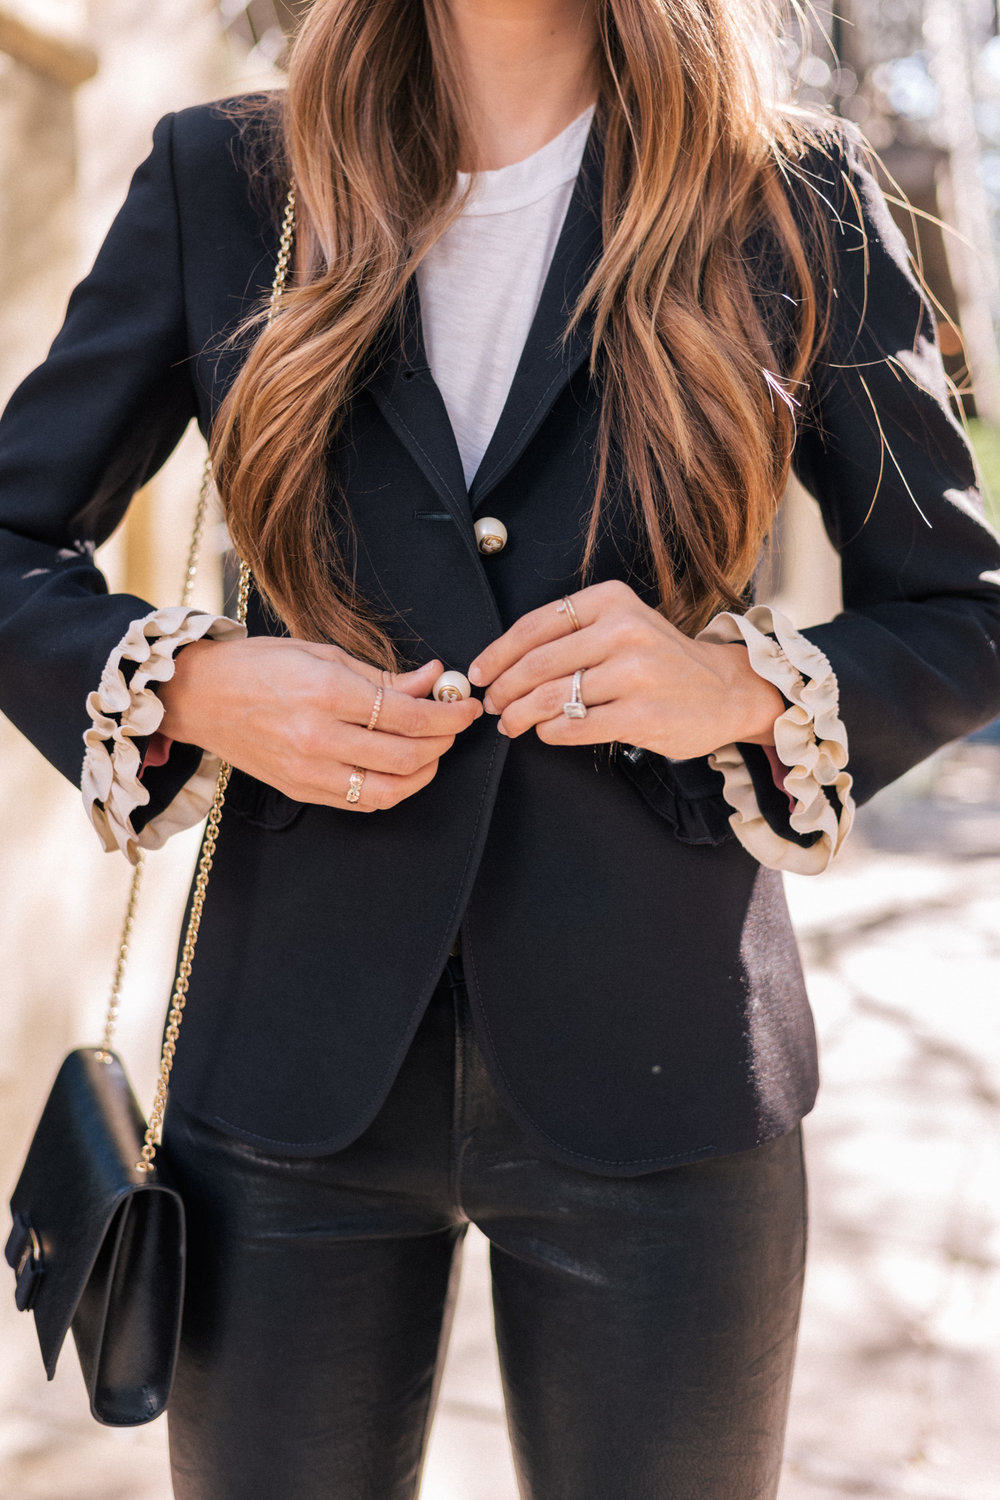 This is a perfect example of why I love her style.  She took an all black outfit and made it very feminine by styling this ruffle cuffed blazer, which is way more exciting than your average blazer.